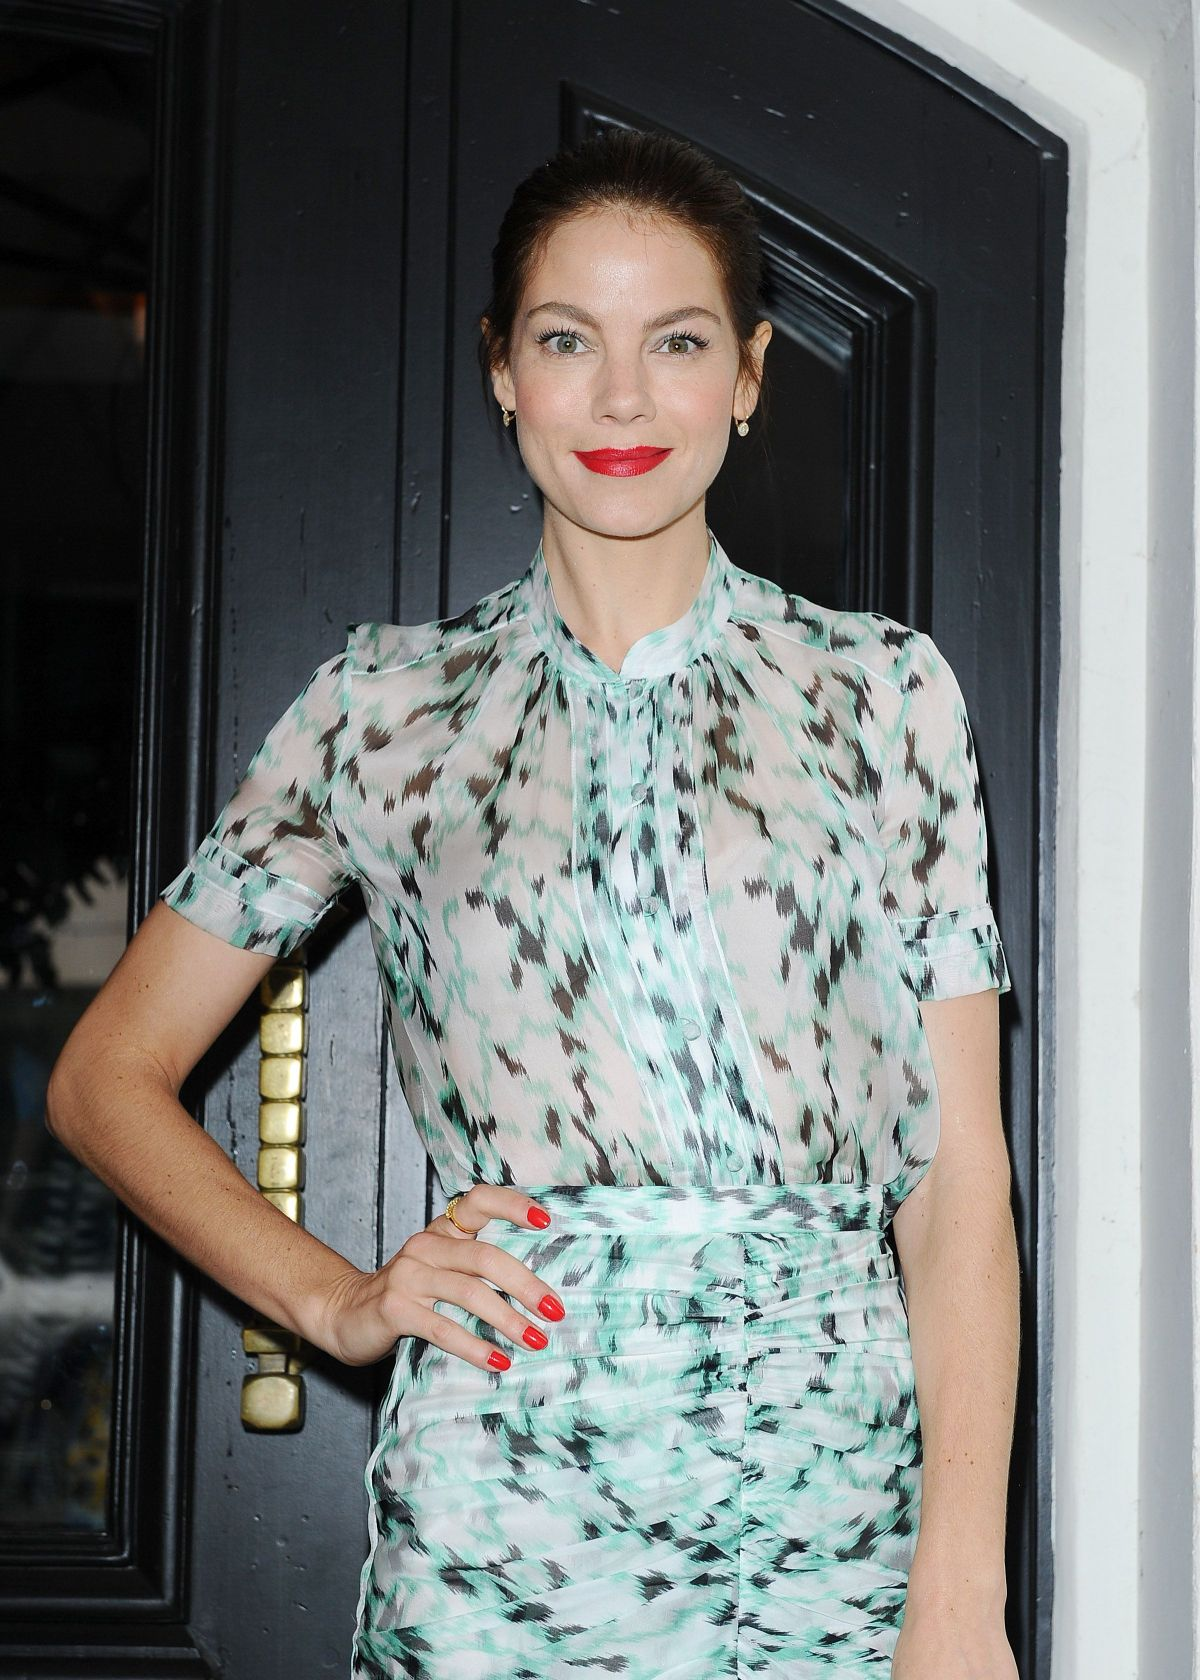 MICHELLE MONAGHAN at W Magazine Luncheon in Los Angeles